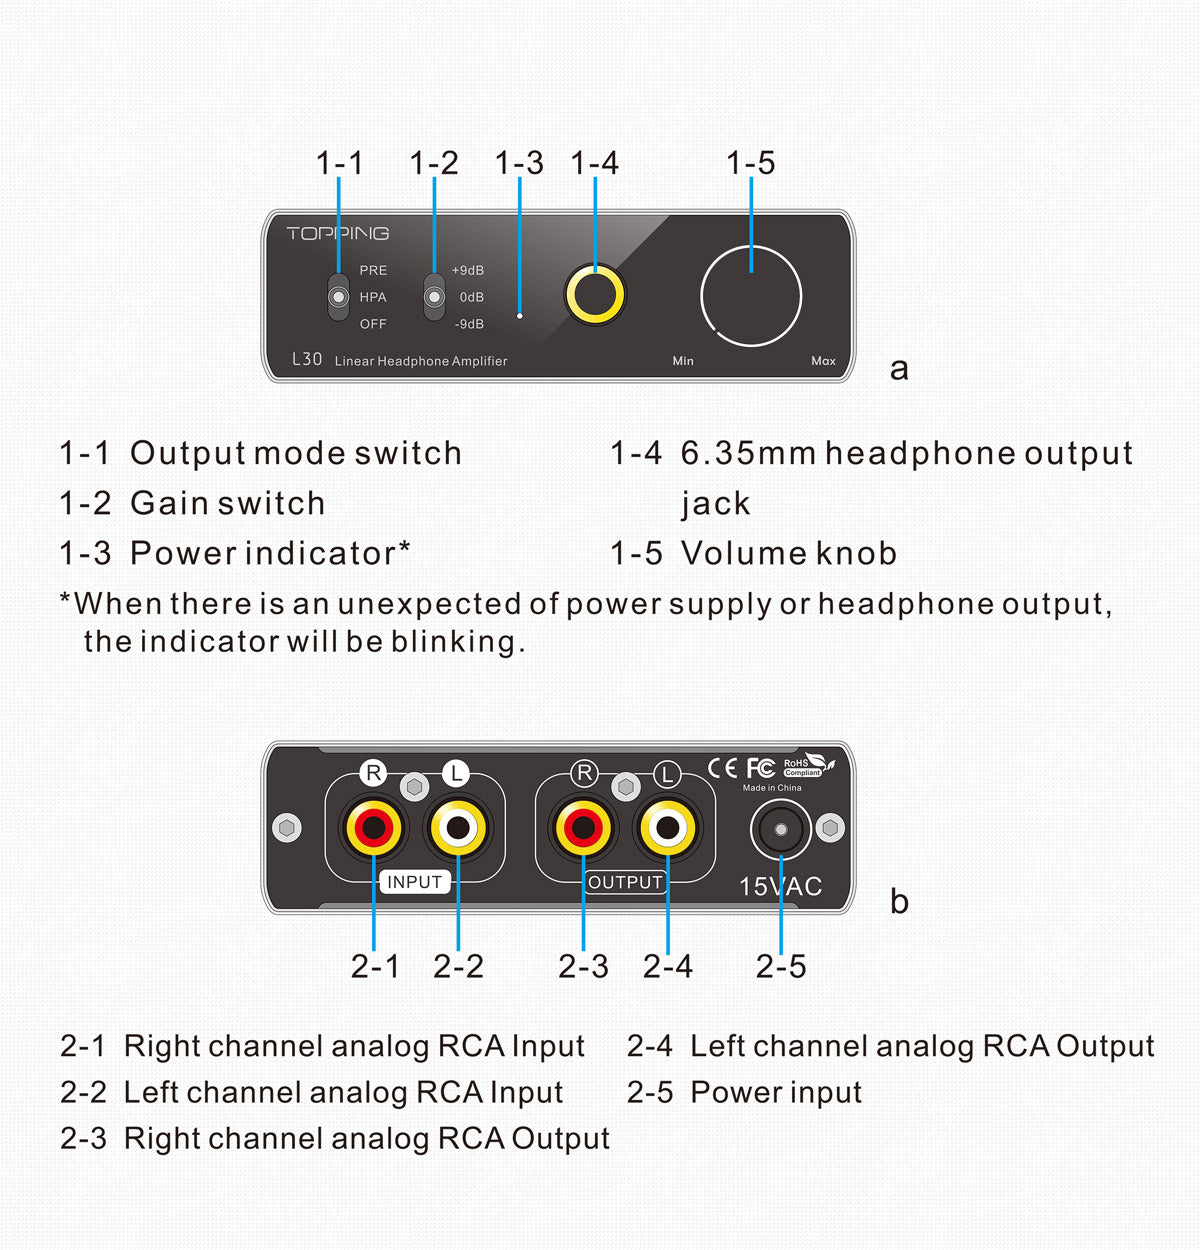 TOPPING L30 headphone amplifier inputs and outputs